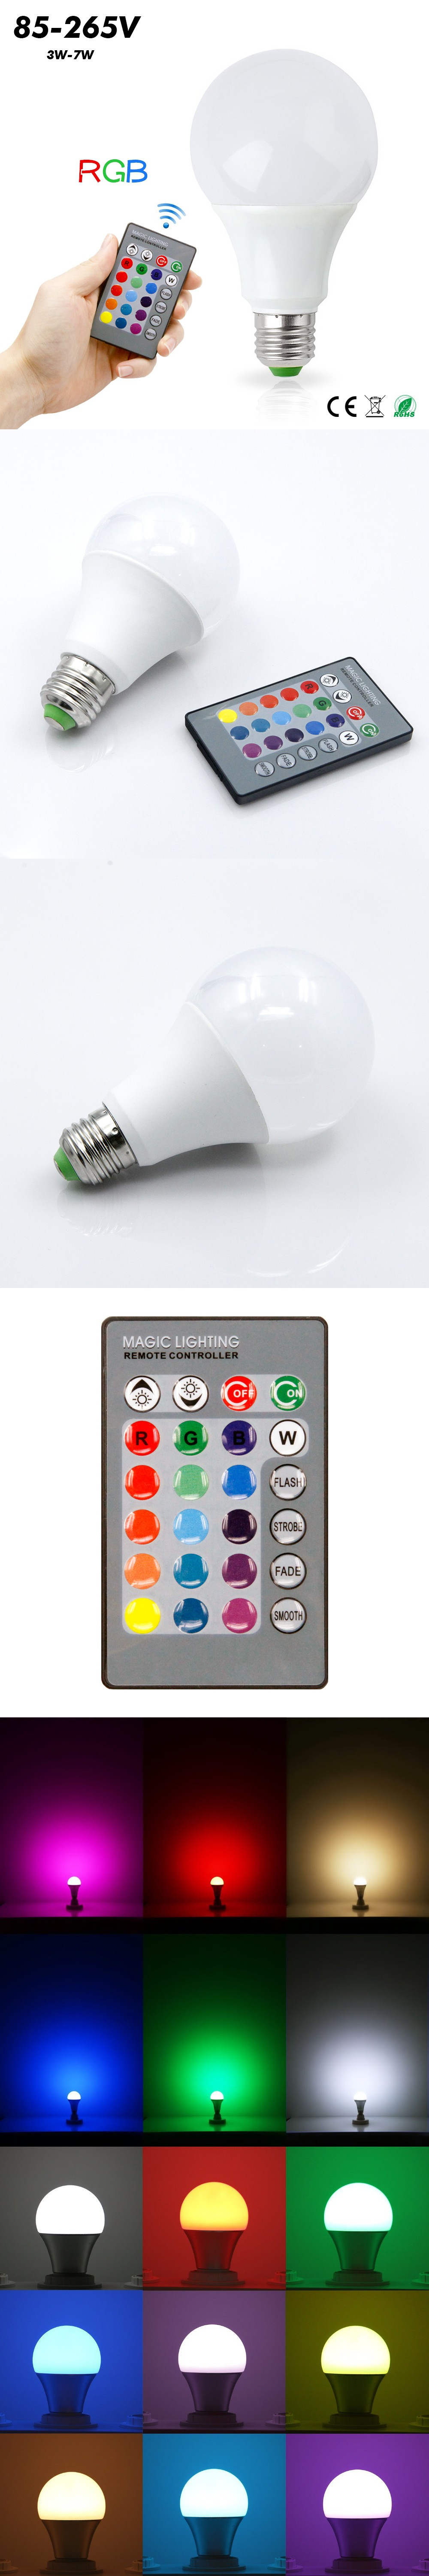 RGB LED Lamp E27 3W 5W 7W RGB LED Bulb SMD 5050 lampara led 85-265V Home Decoration 16 Colors Change IR Remote Controller $5.37